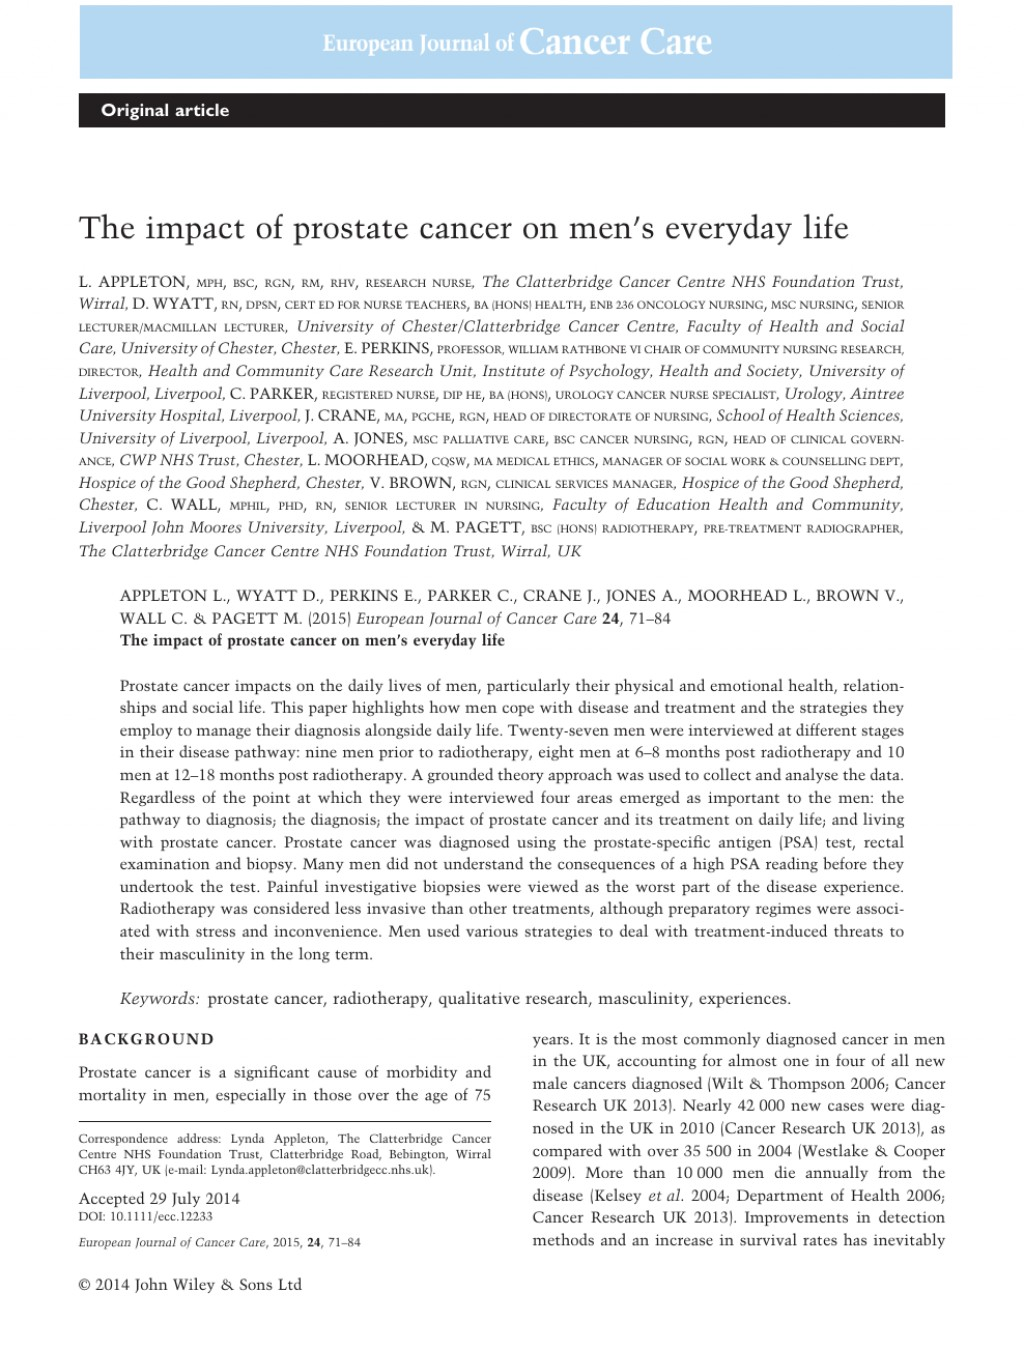 005 Cancer Research Paper Marvelous Topics Prostate Skin Ideas Large